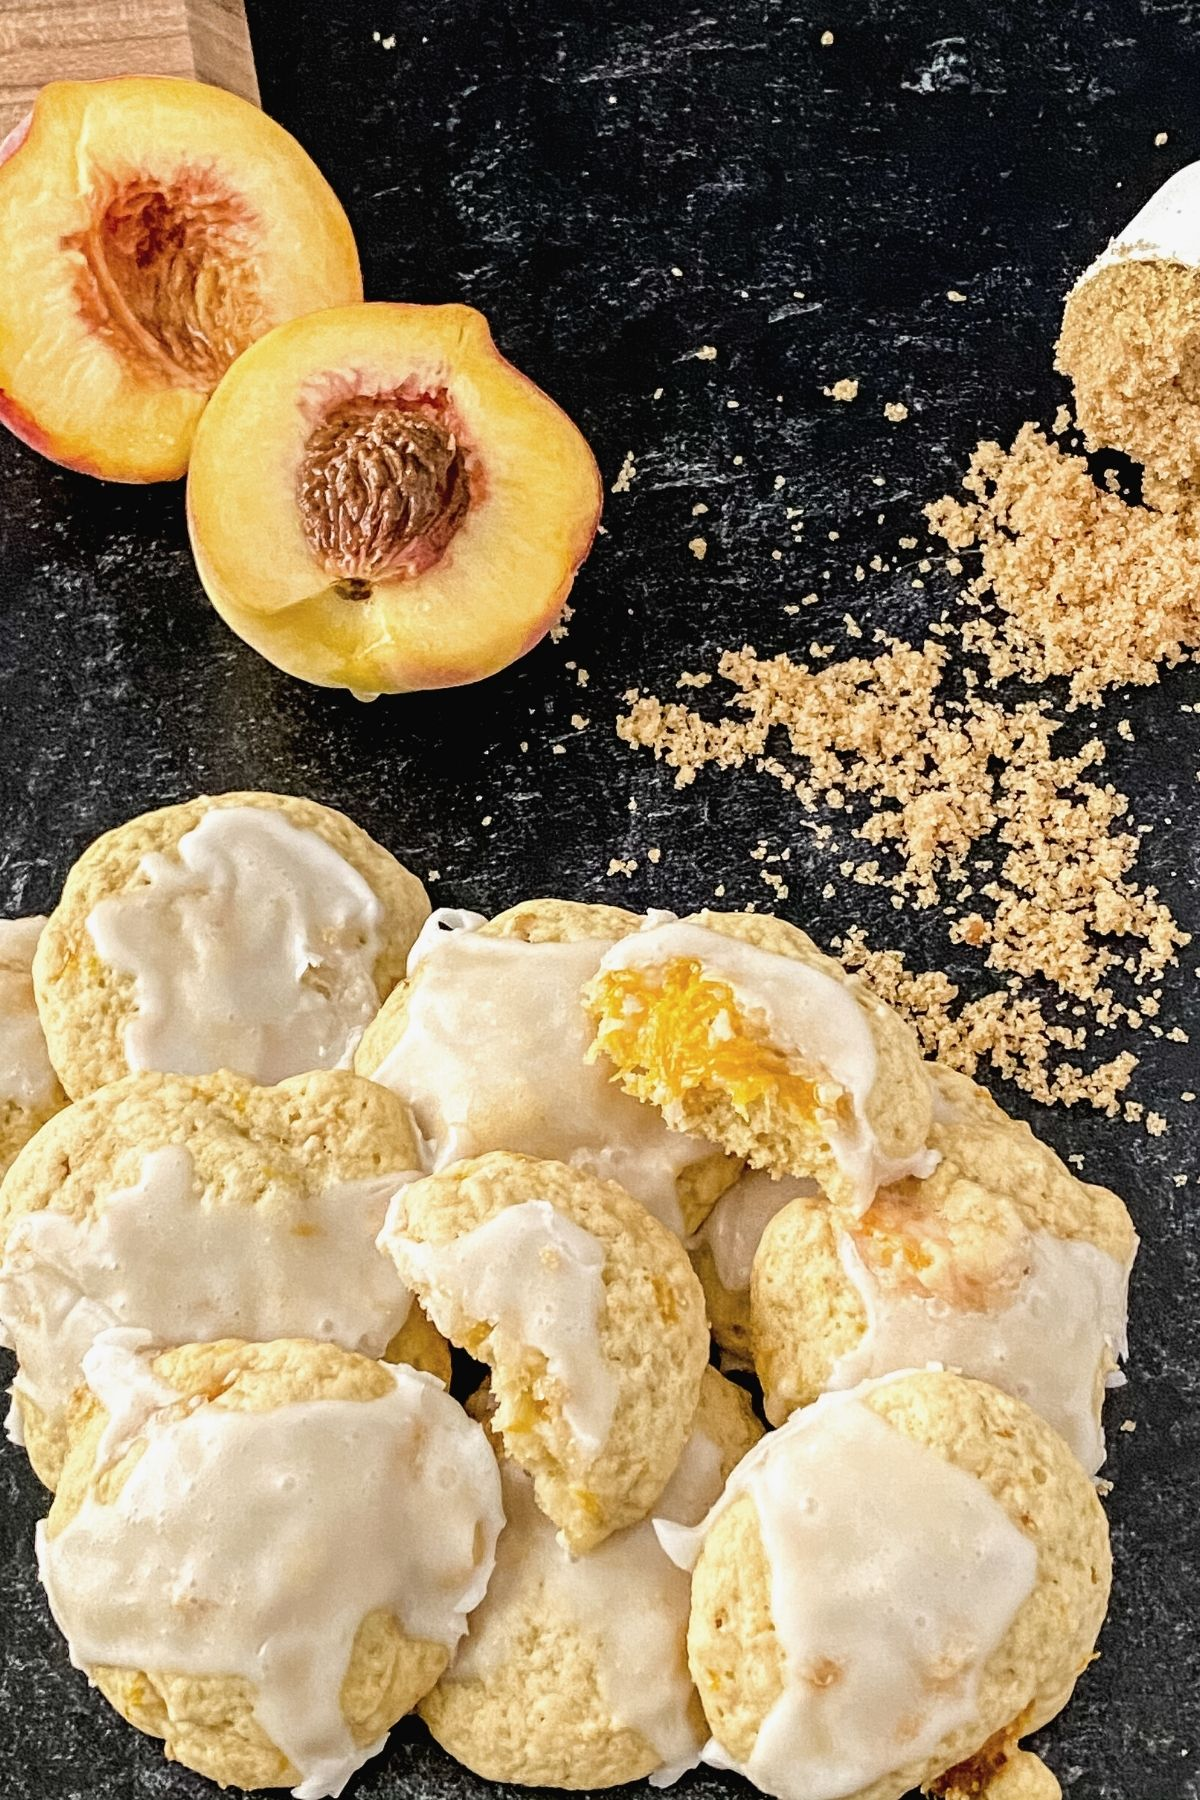 Looking down on stack of cookies with white glaze next to sliced peach